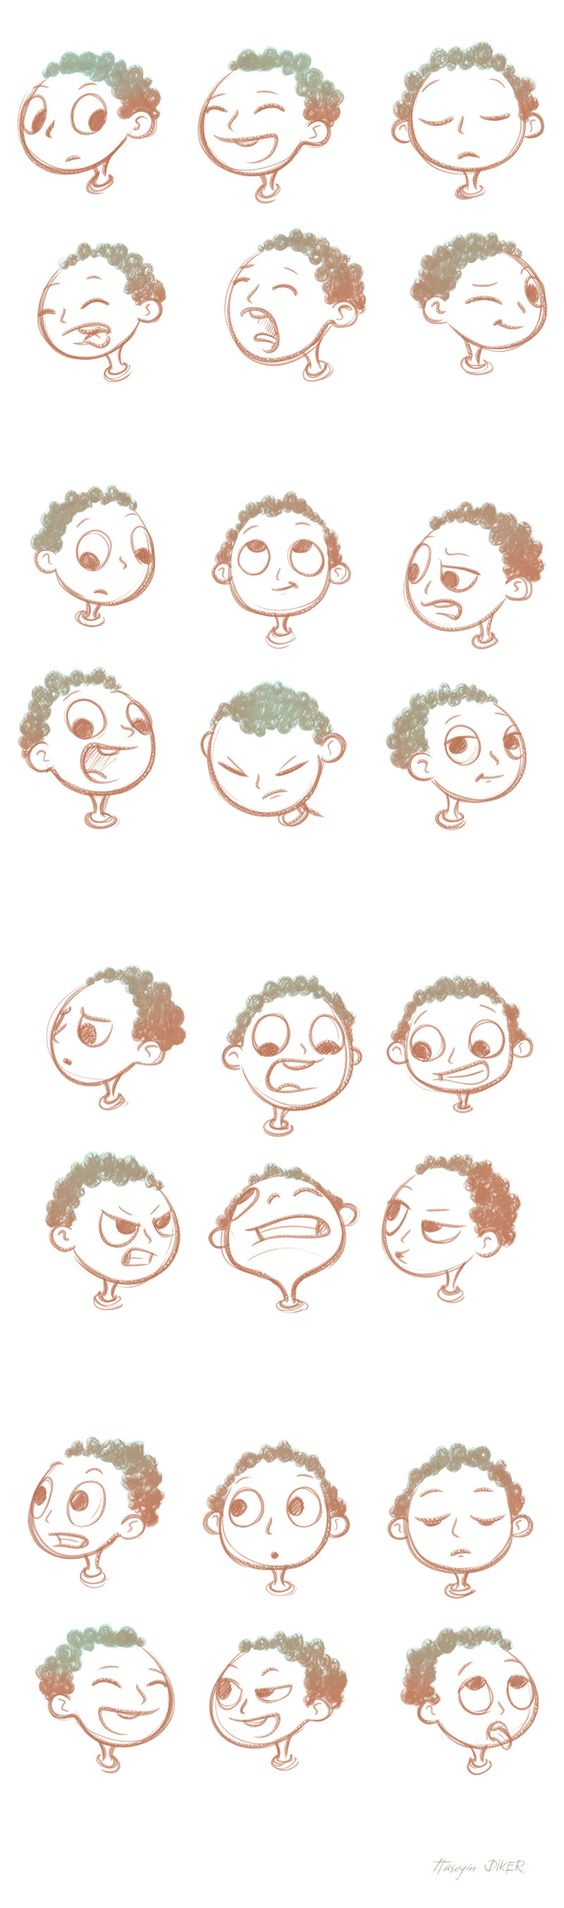 Character Design Editor : Face expressions sketch on behance character design